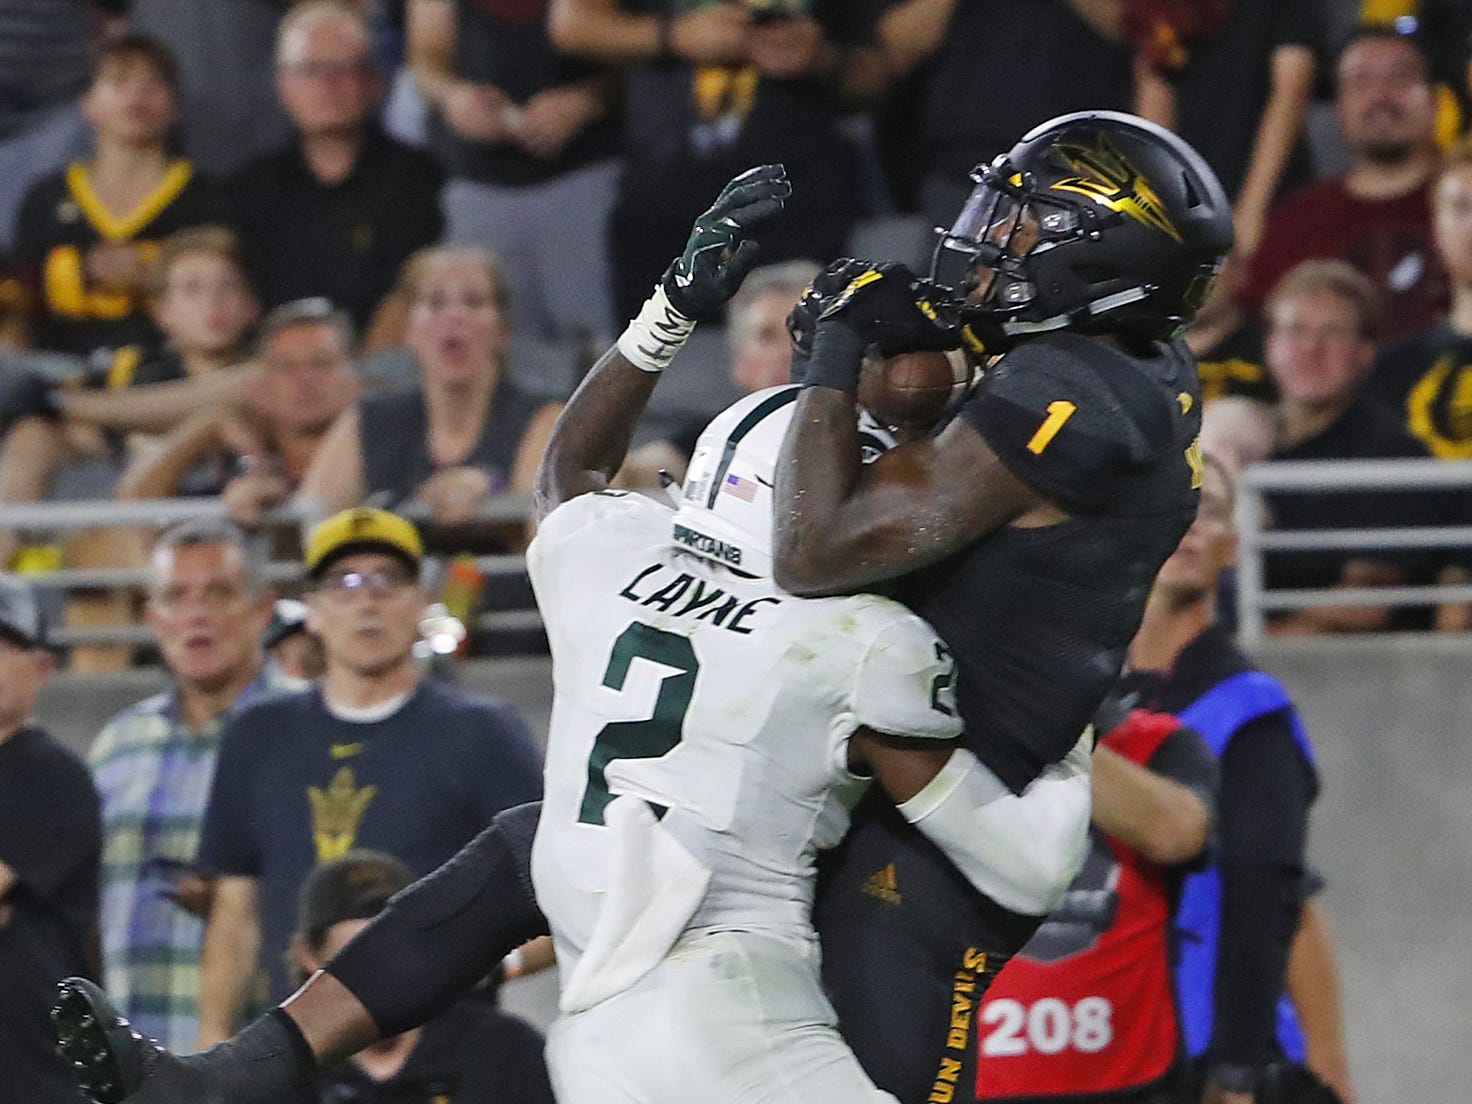 Arizona State Sun Devils wide receiver N'Keal Harry (1) makes a touchdown catch against Michigan State's Justin Layne (2) during the fourth quarter at Sun Devil Stadium in Tempe, Ariz. on Sept. 8, 2018.